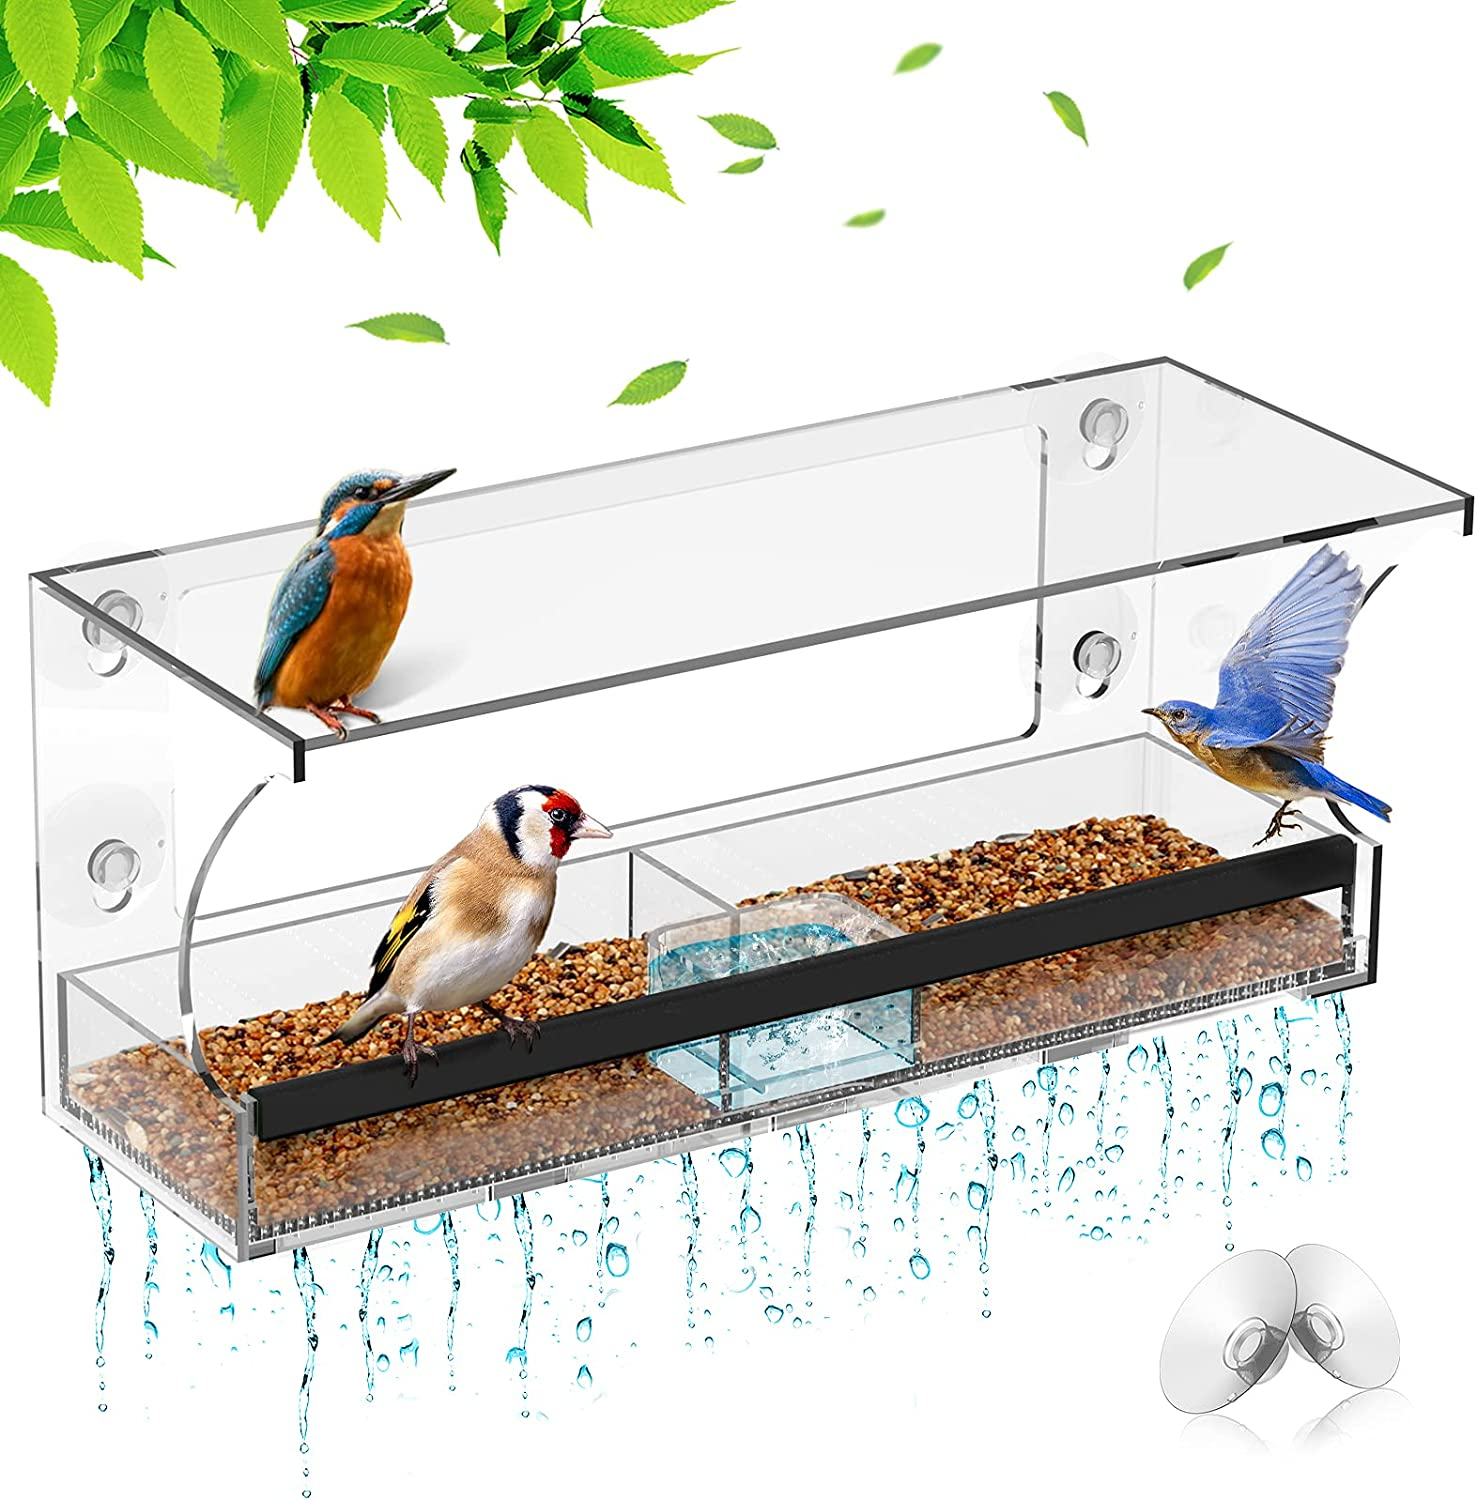 NPET Ultra-Cheap Deals Bird Feeders excellence Window Feeder St Sliding Seed Tray with